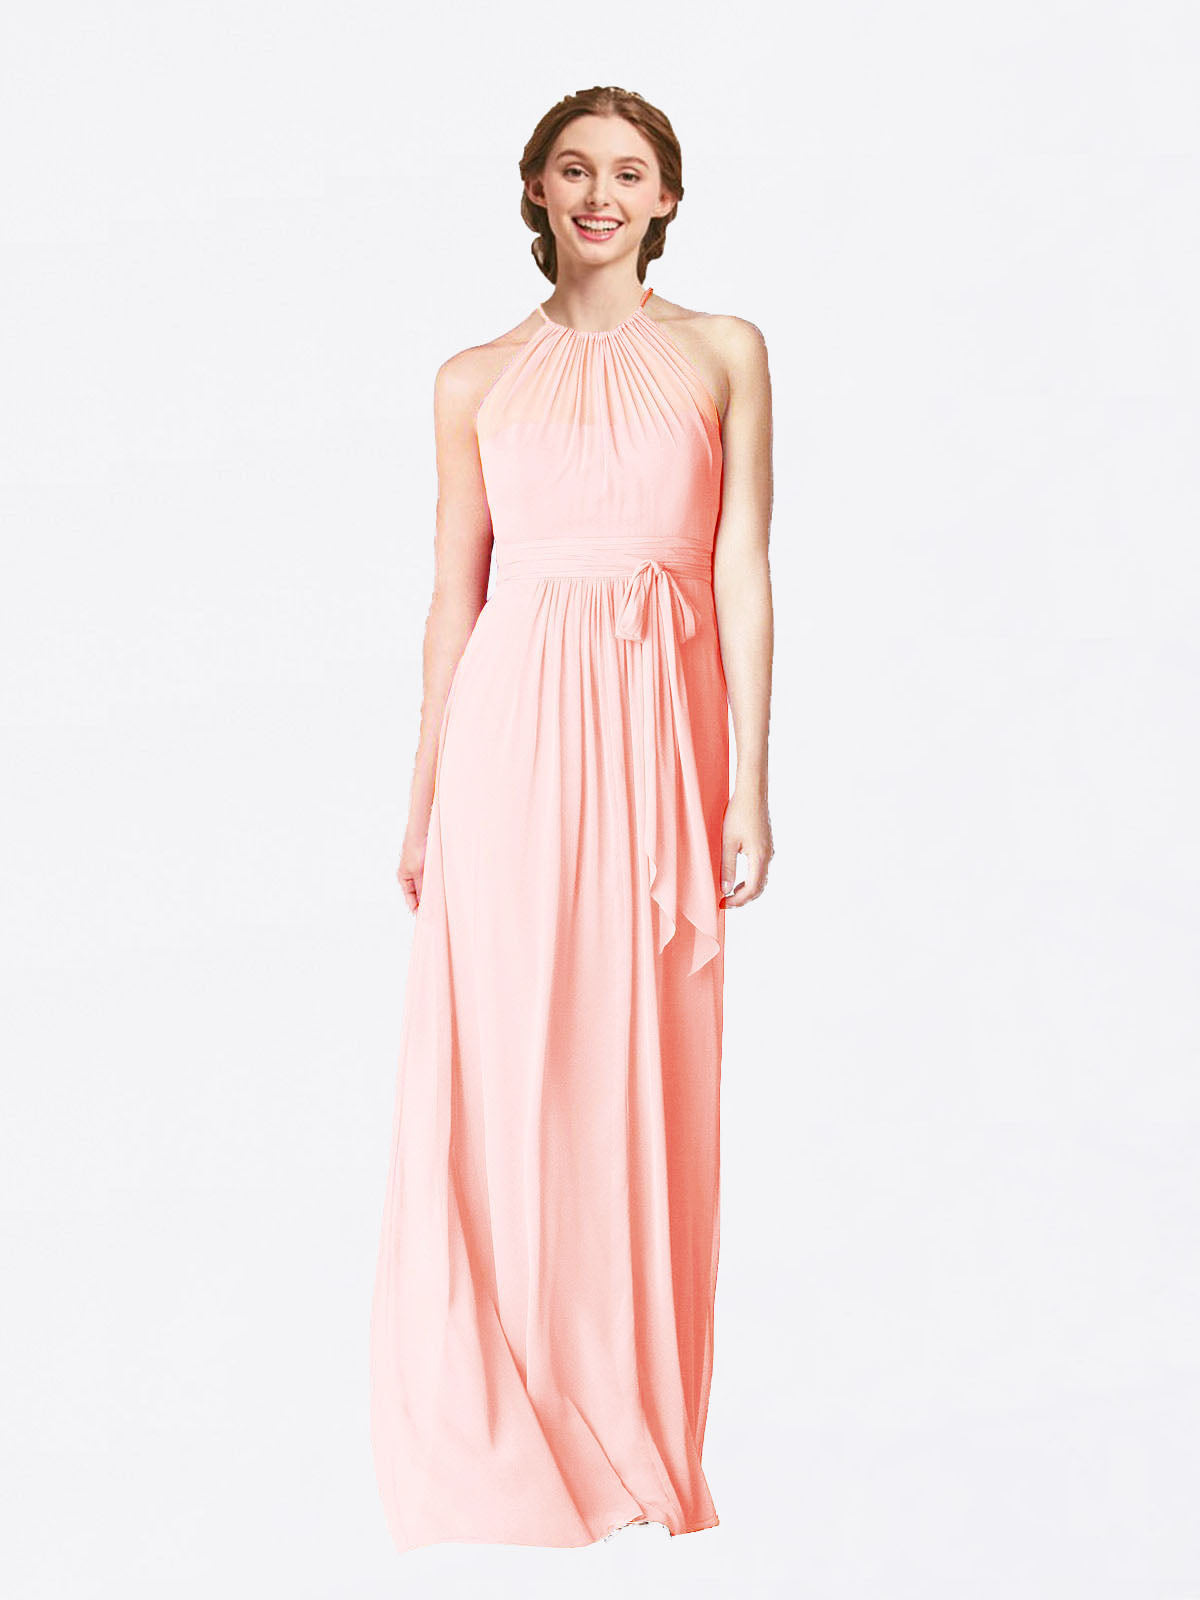 Long A-Line Halter Sleeveless Pink Chiffon Bridesmaid Dress Laura